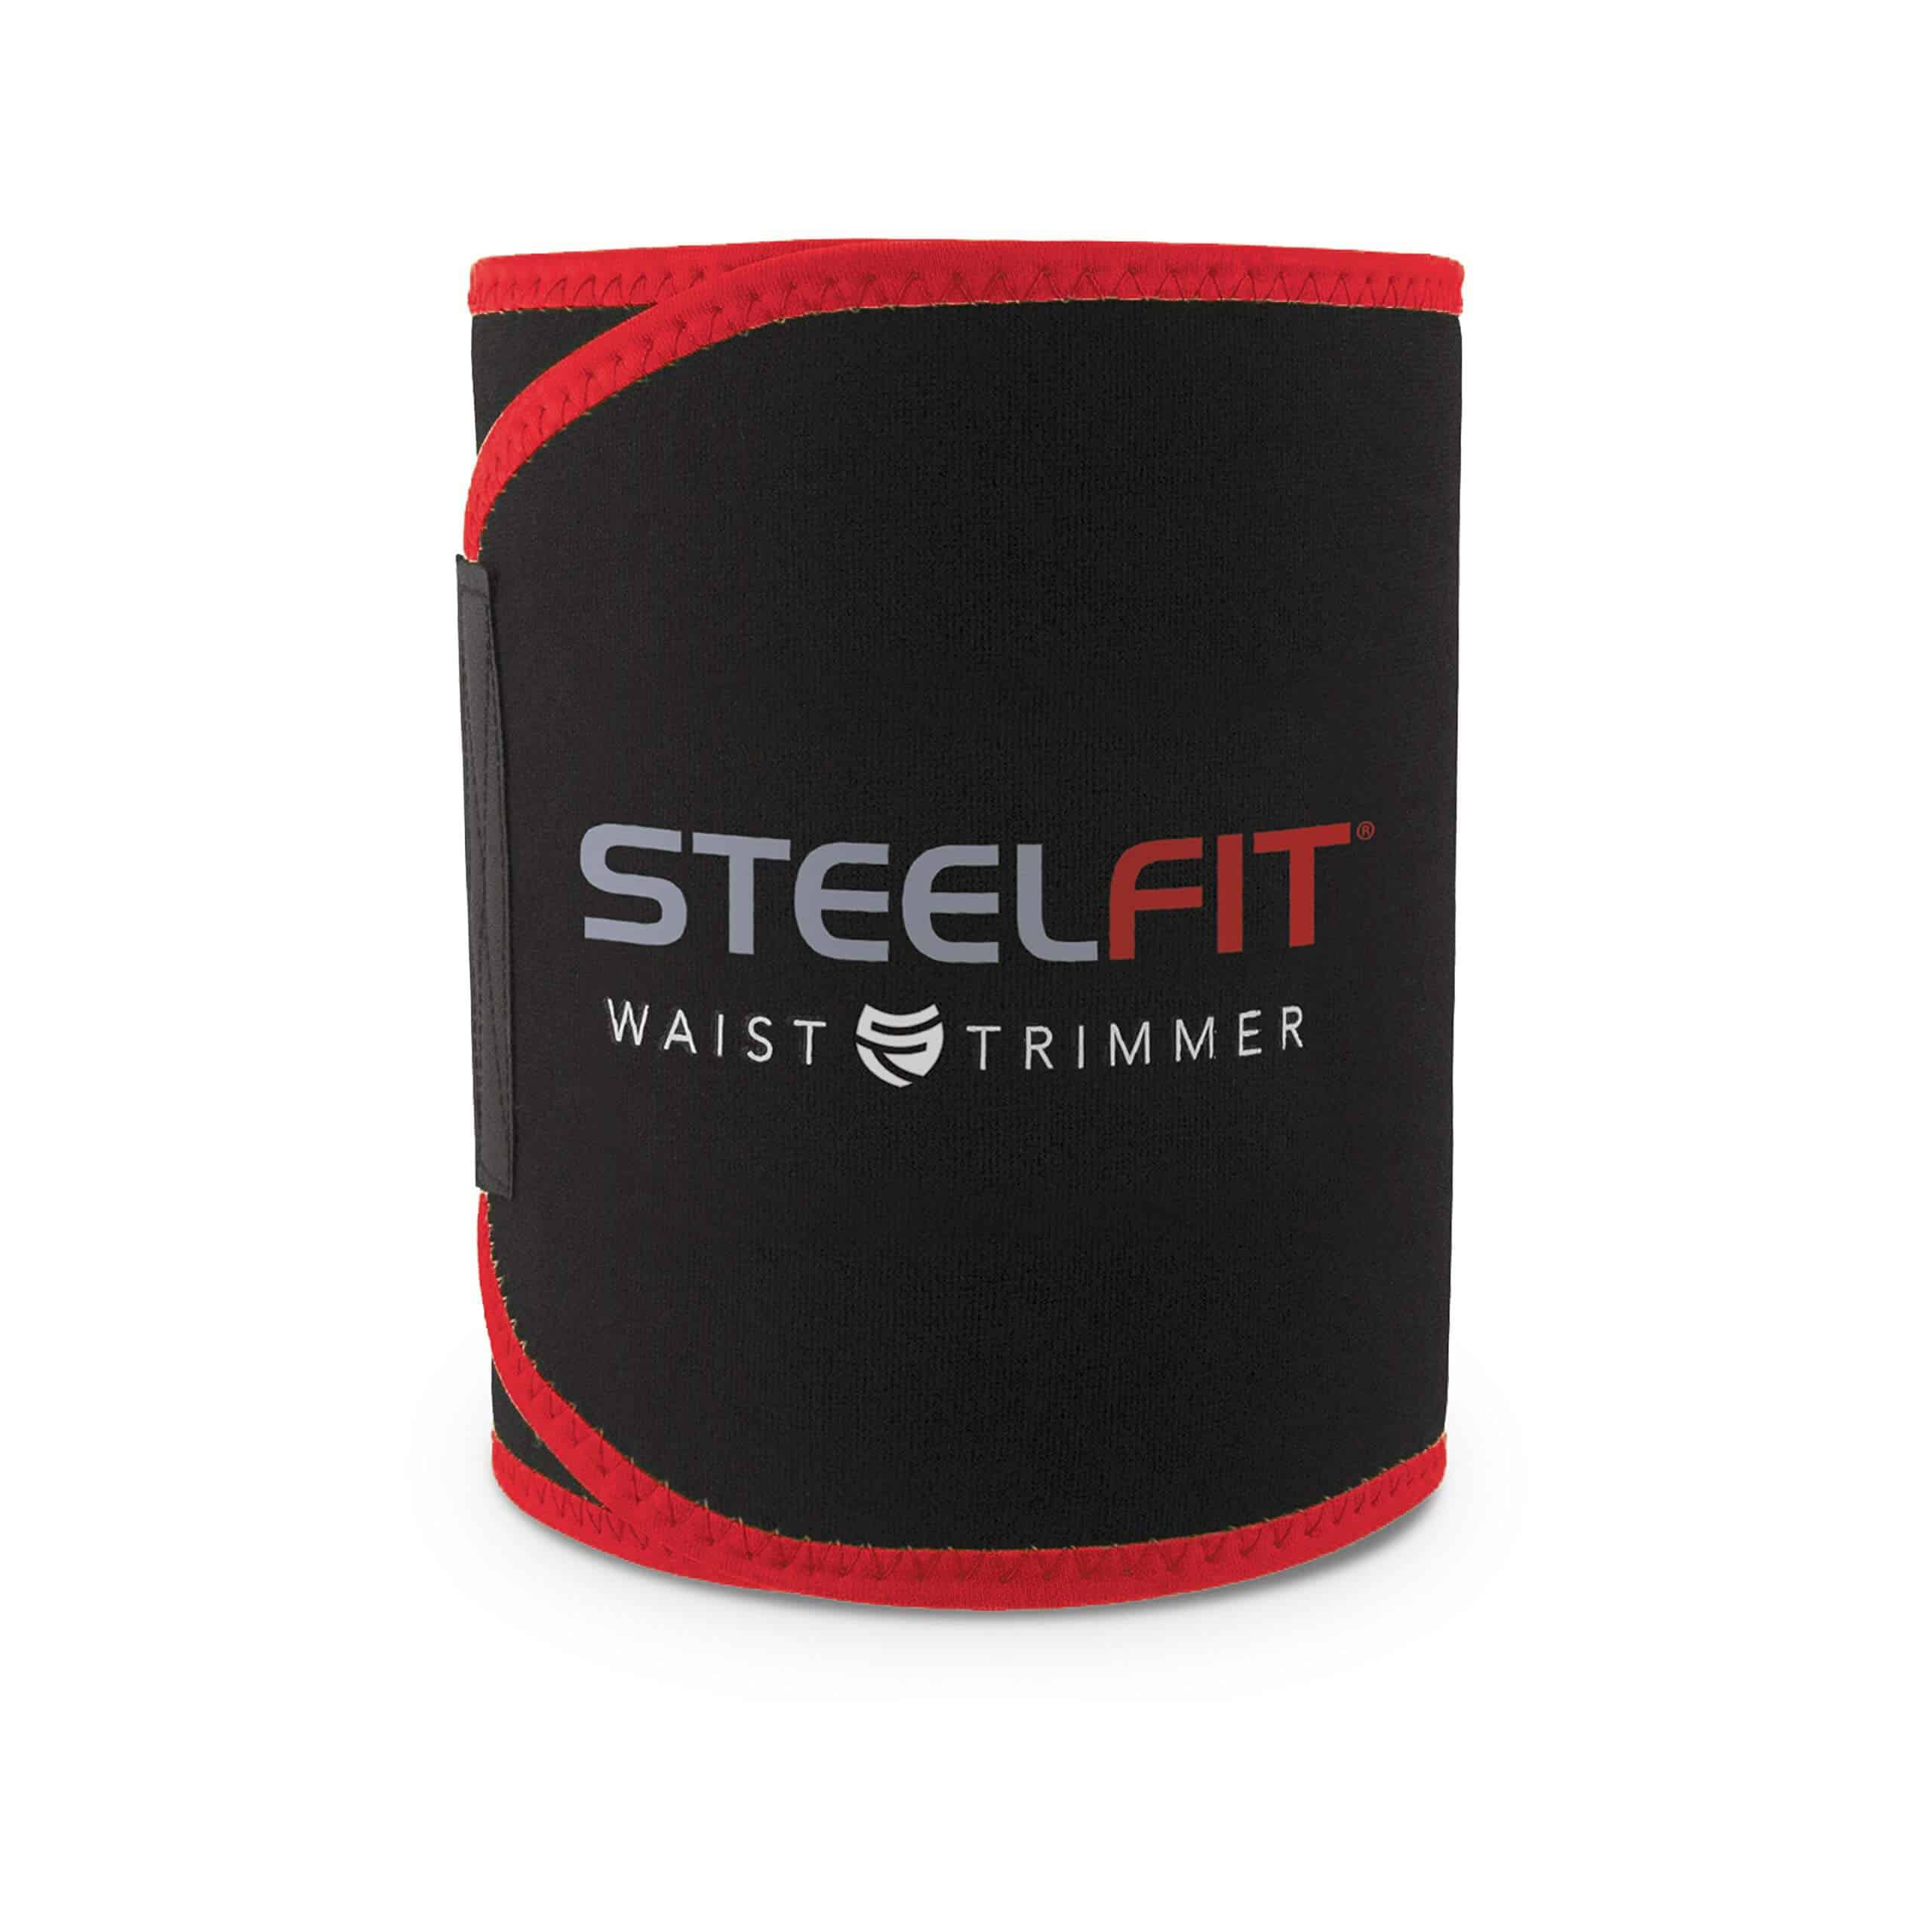 Abs Of Steel Definition Cream Reviews steel fit review (update: 2019) | 10 things you need to know